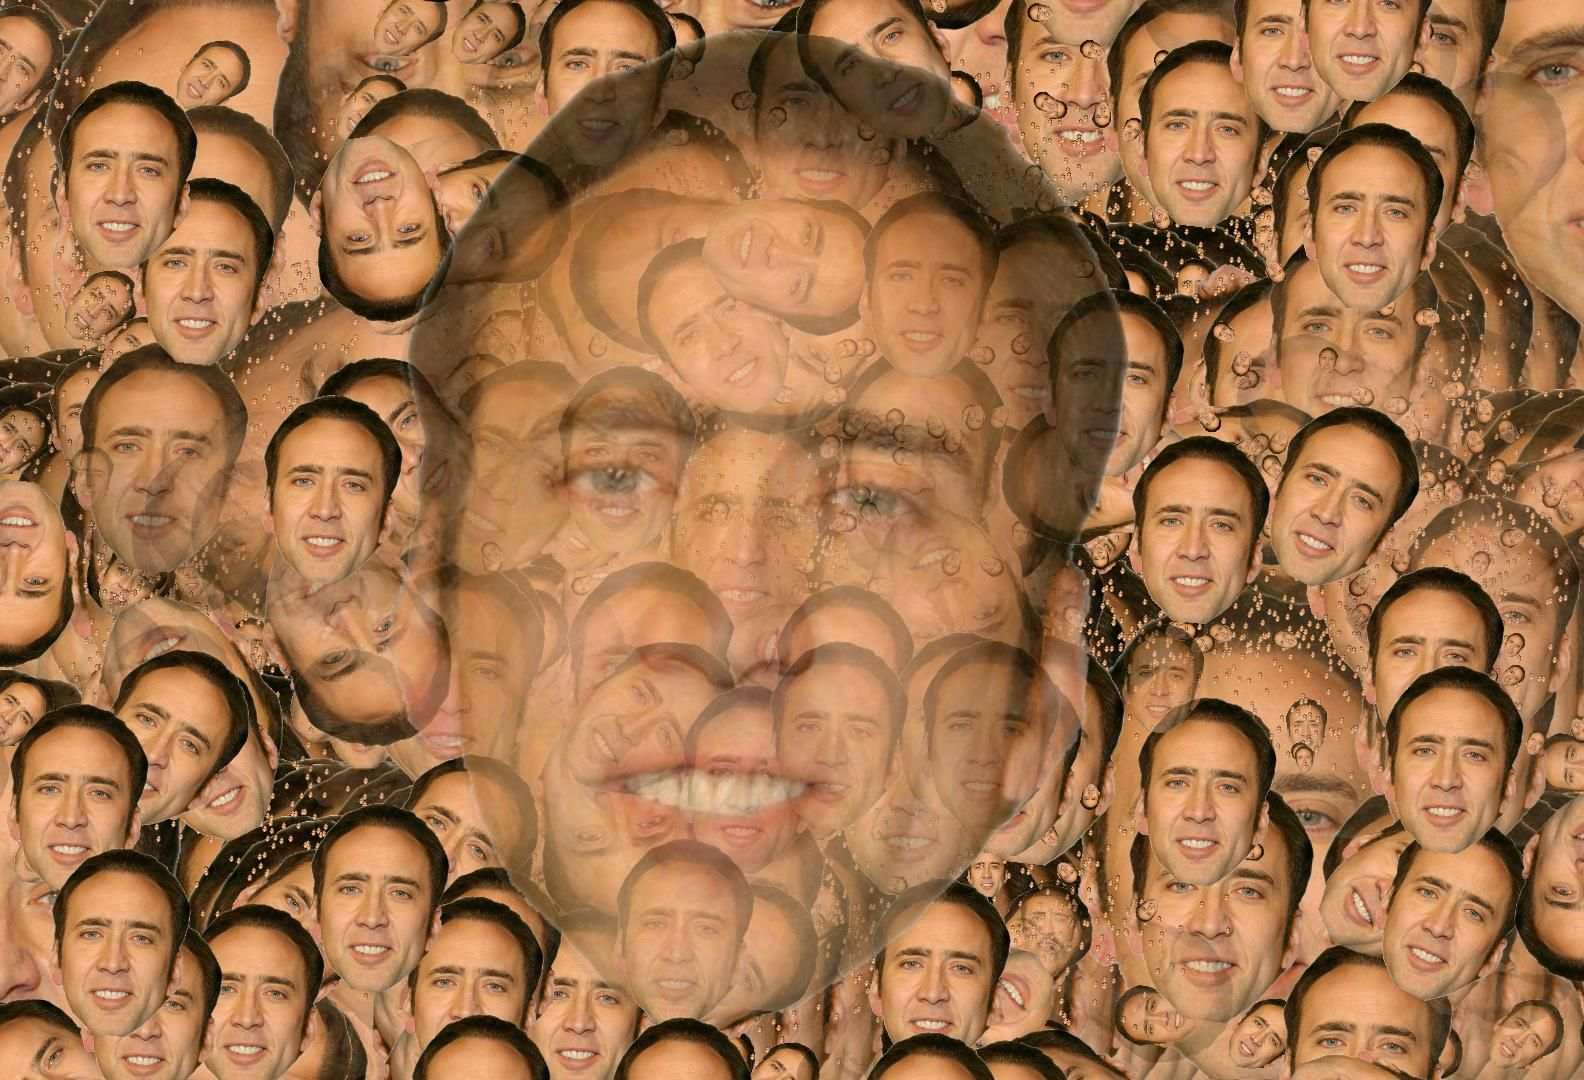 Rayman Pirate Community View Topic Nicolas Cage Thread Everything Nic Cage Come On In Nicolas Cage Nicolas Wallpaper